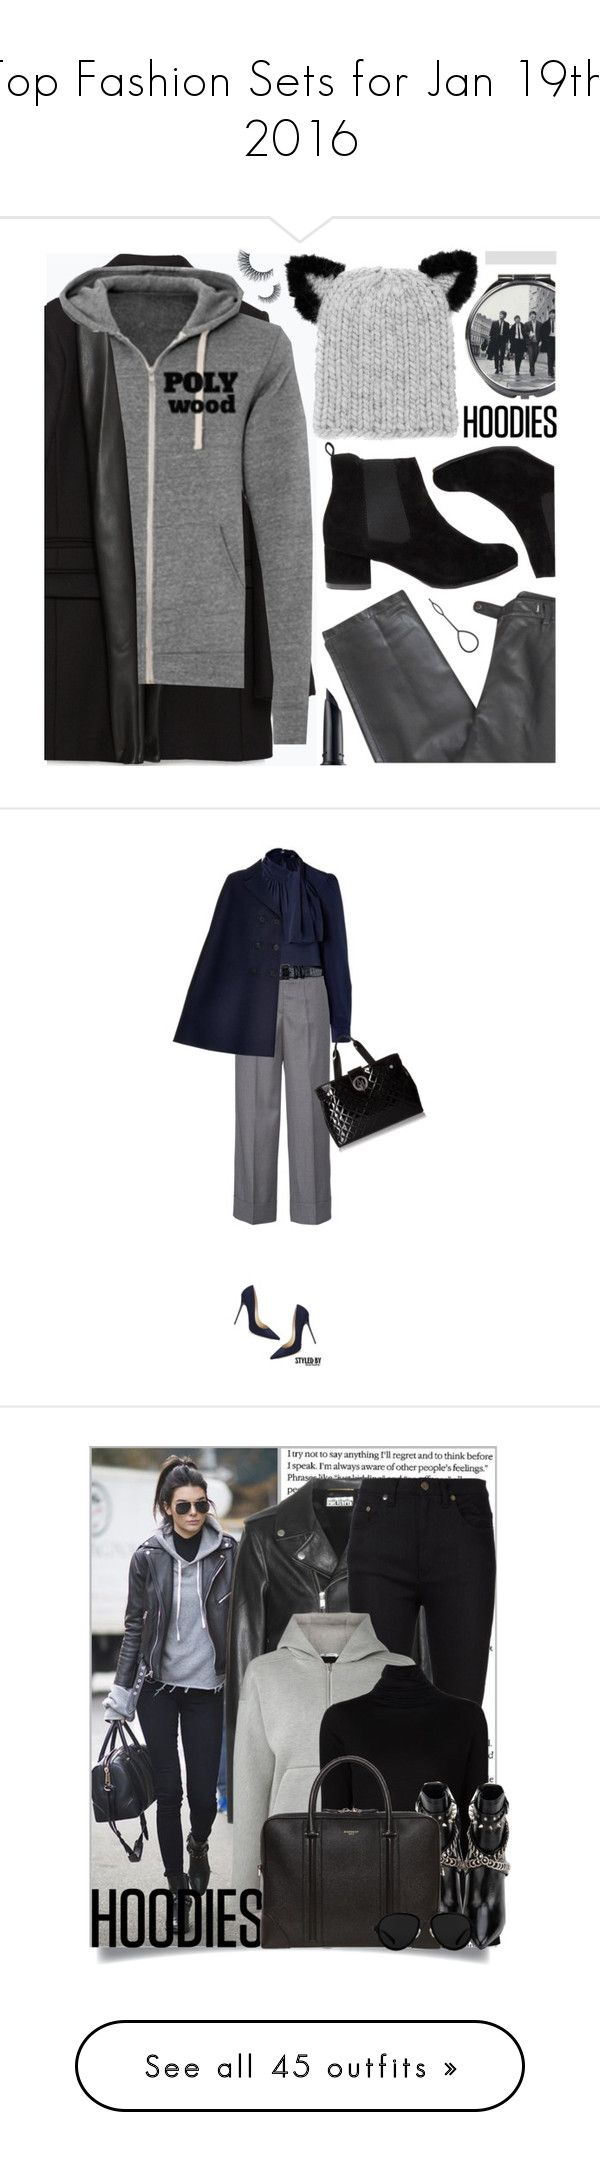 """""""Top Fashion Sets for Jan 19th, 2016"""" by polyvore ❤ liked on Polyvore featuring Zara, Polywood, Lafayette 148 New York, Disaster Designs, Eugenia Kim, Benefit, women's clothing, women's fashion, women and female"""